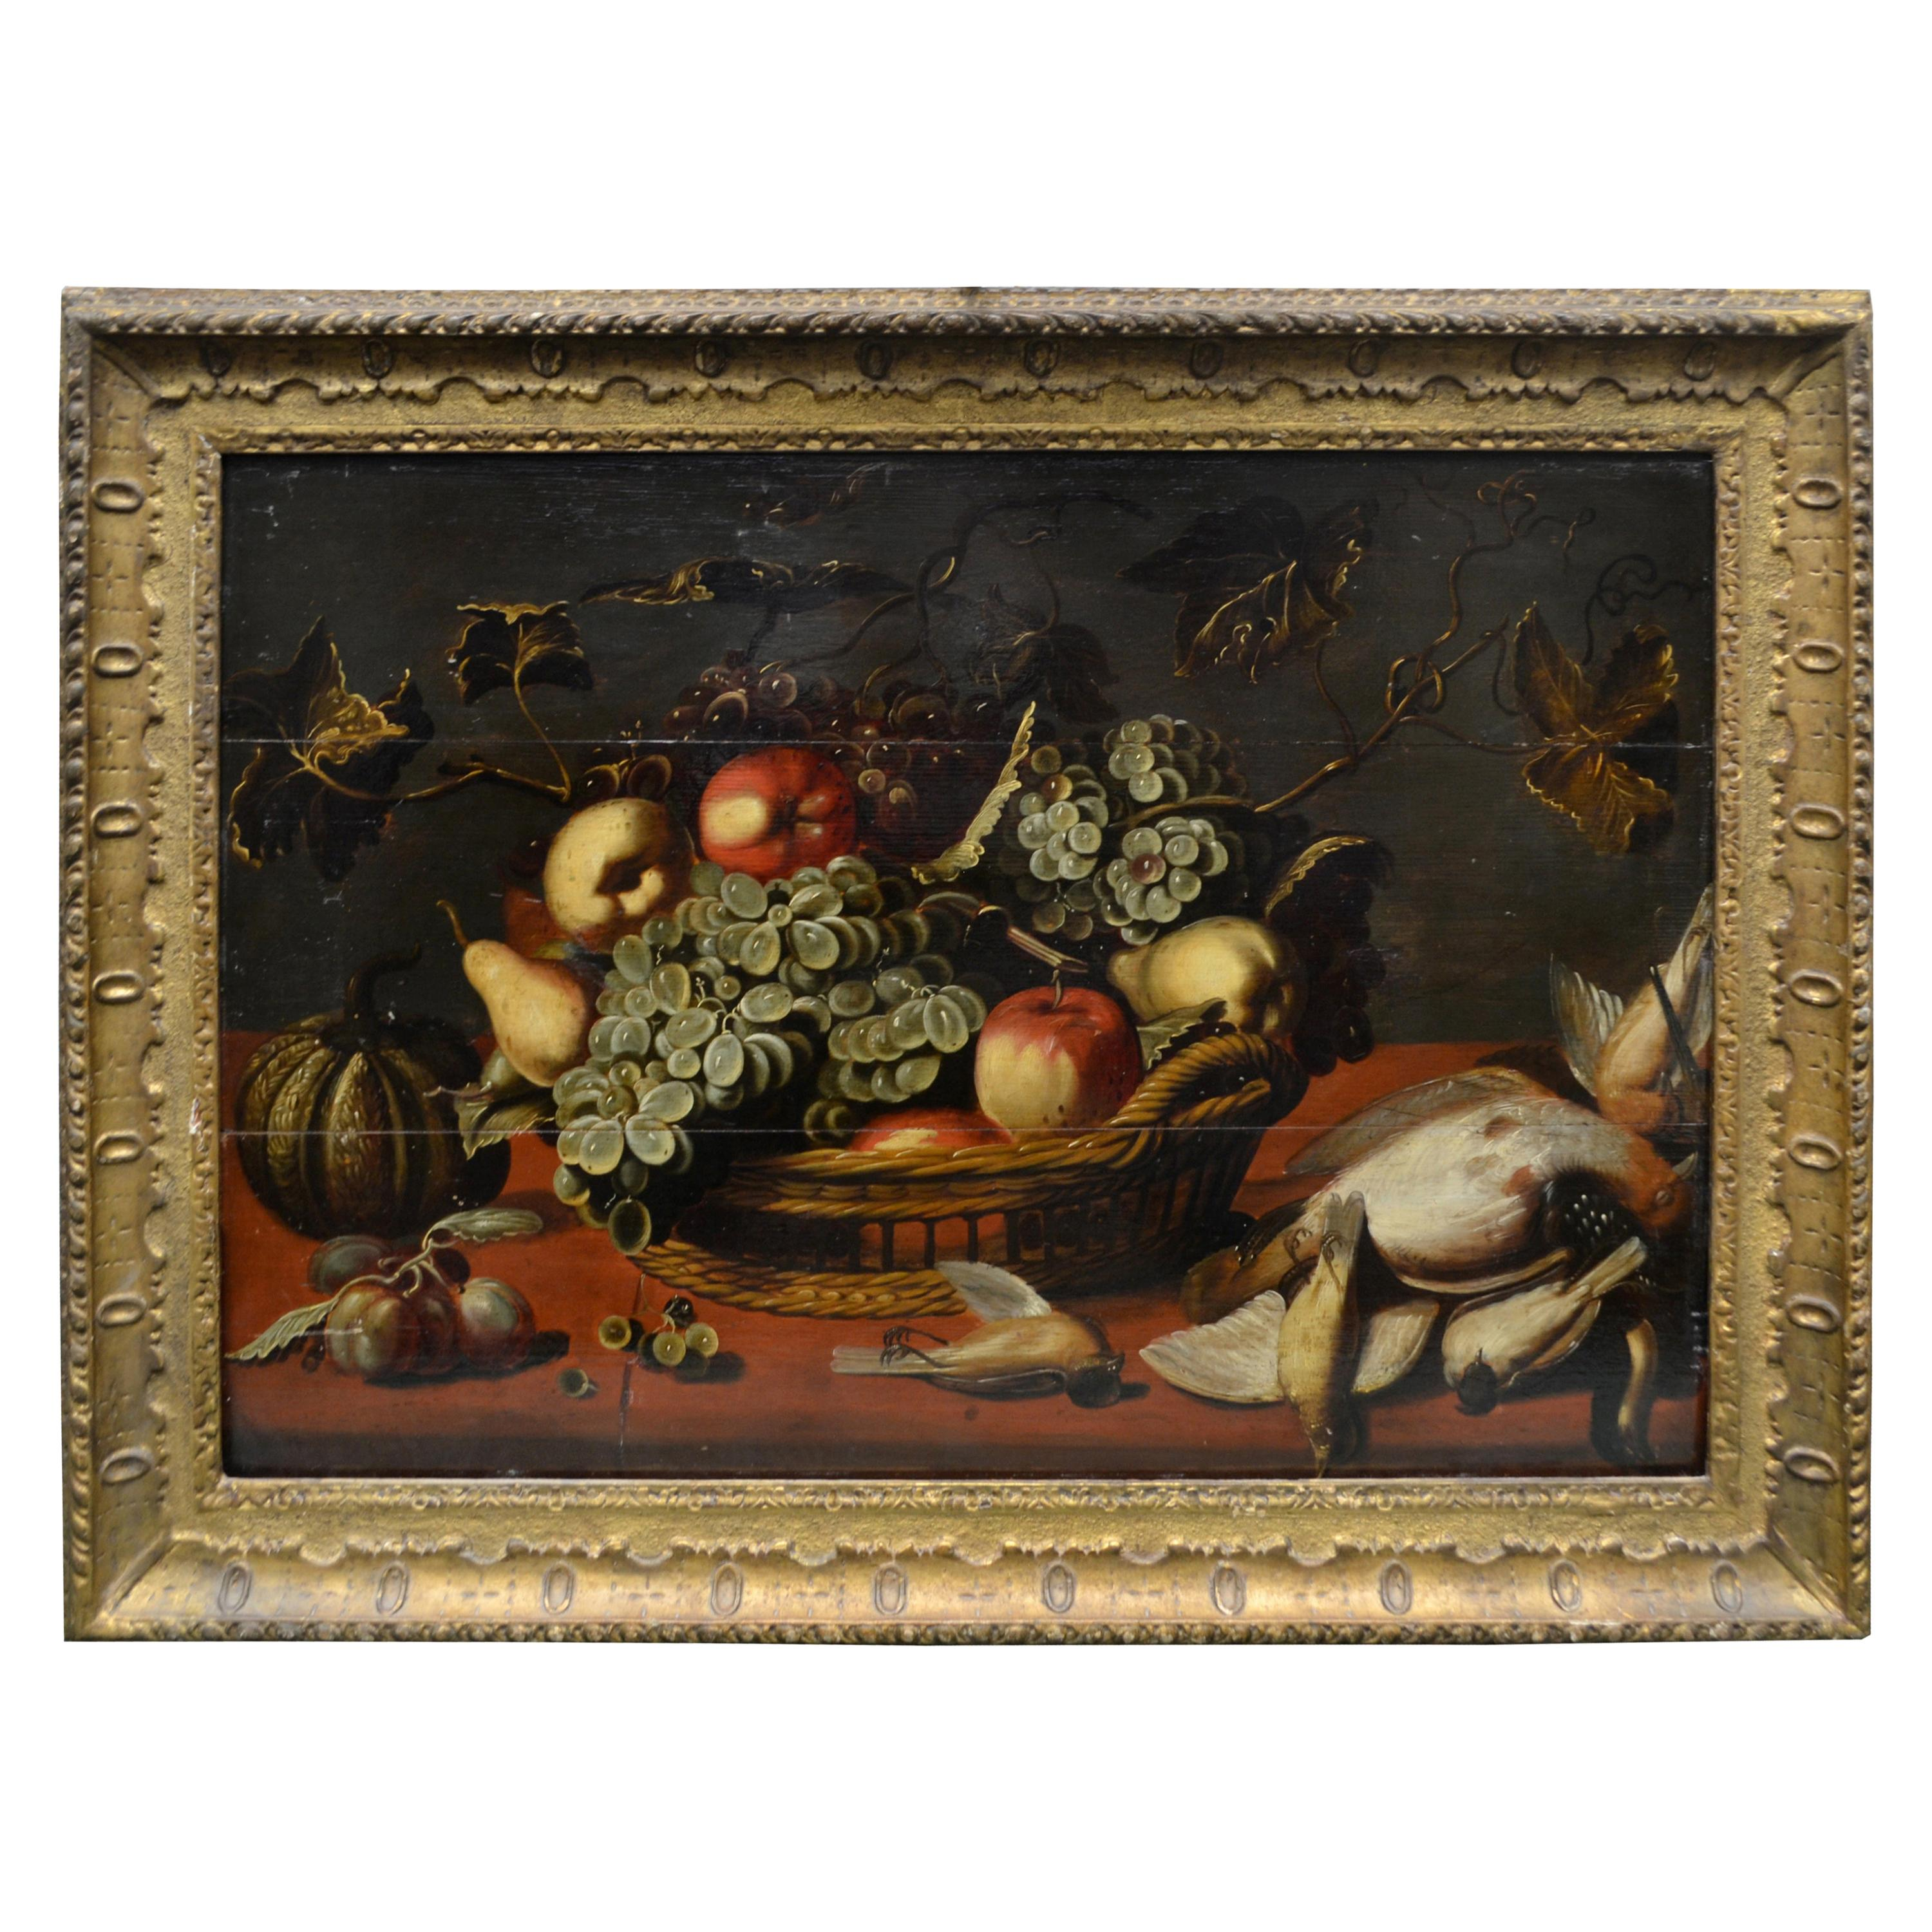 An 18th Century Dutch or Flemish Still Life of fowl and fruit on Panel